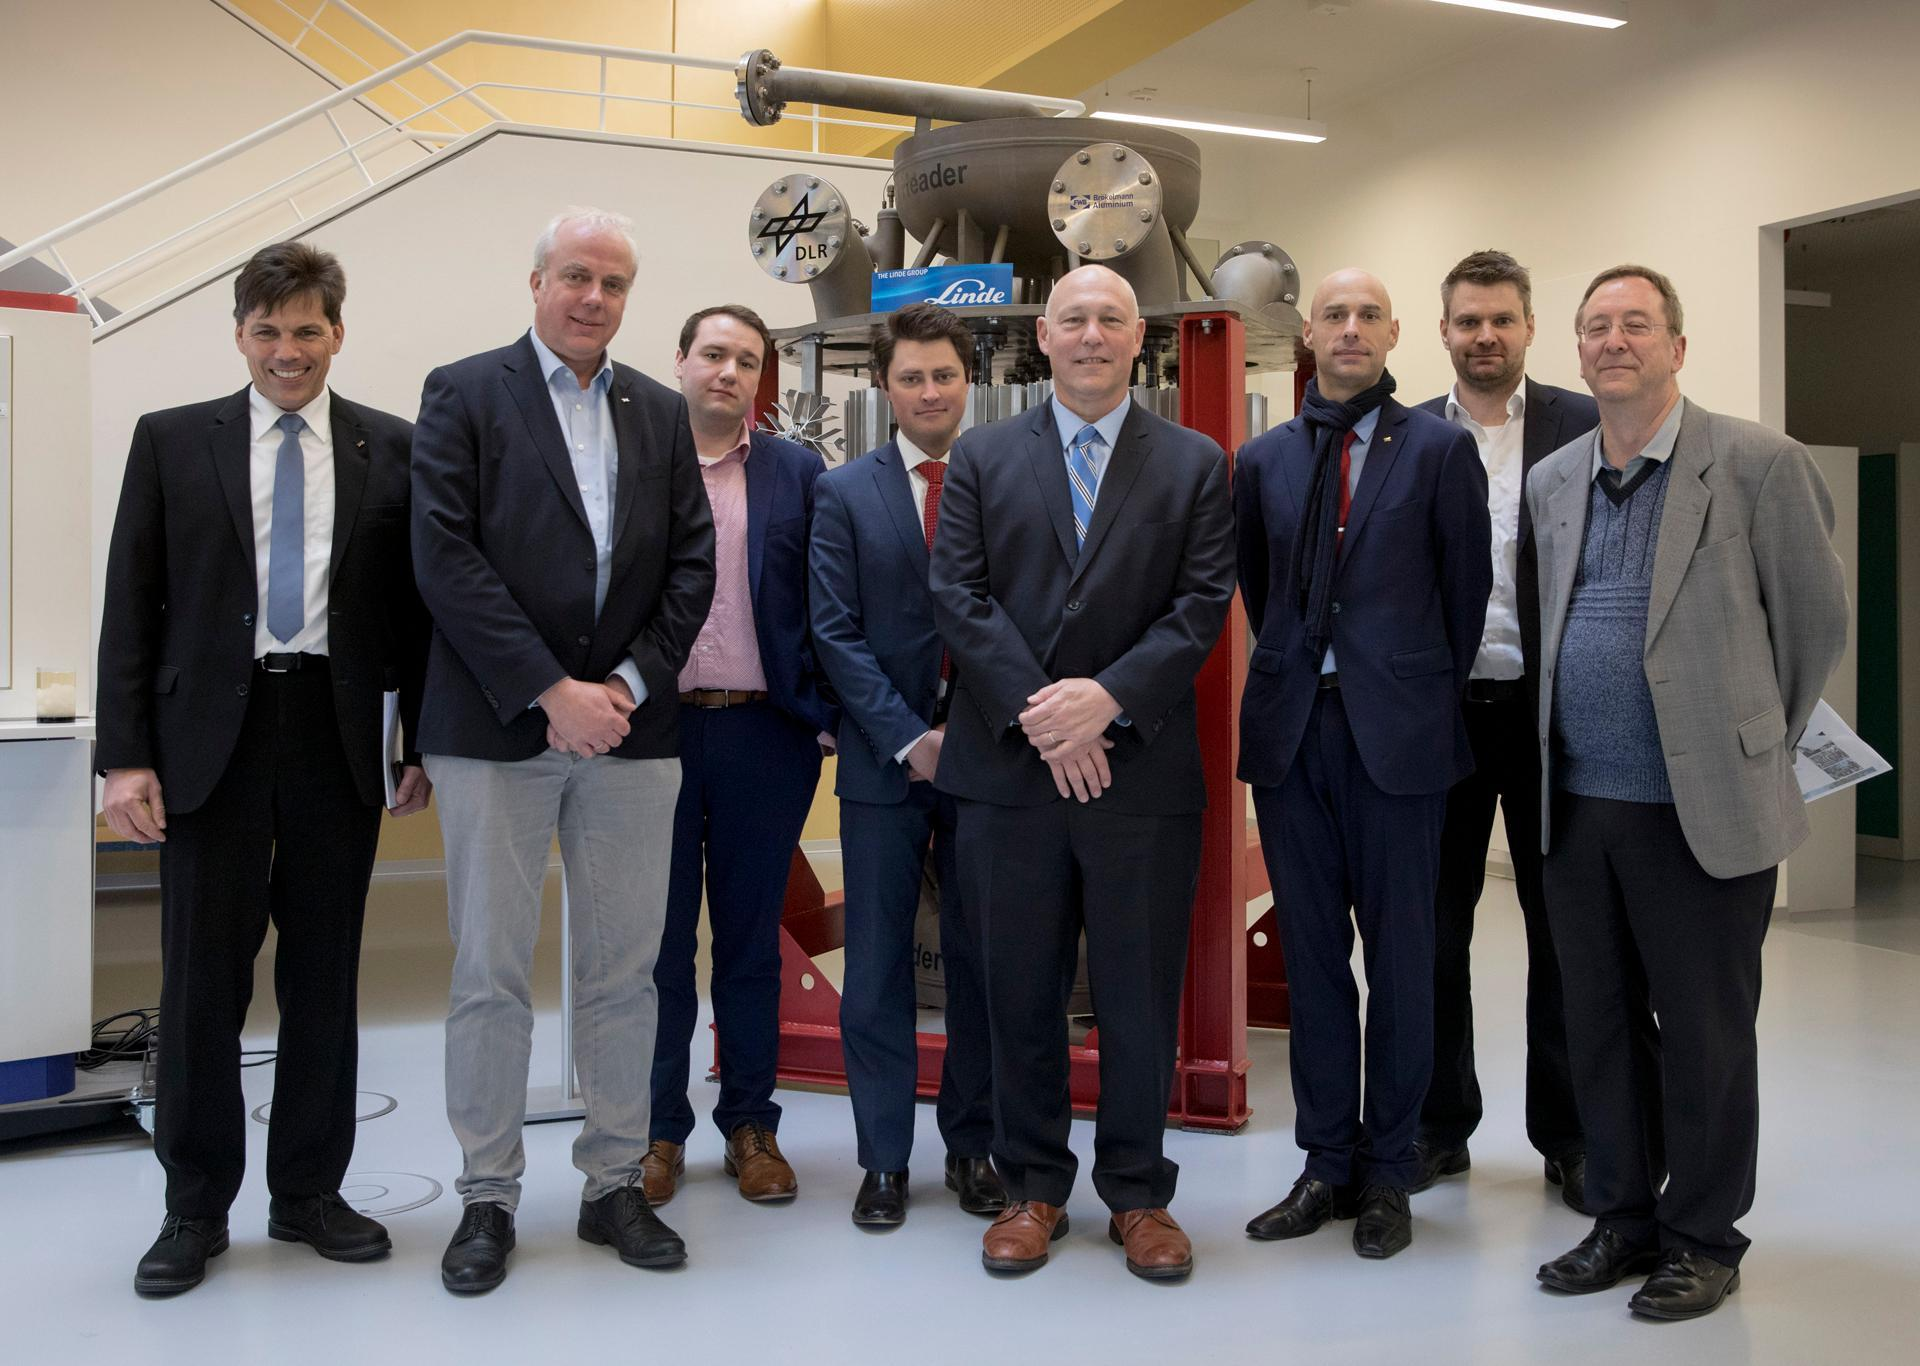 Energy research in focus – a delegation from the US Department of Energy visited DLR Stuttgart